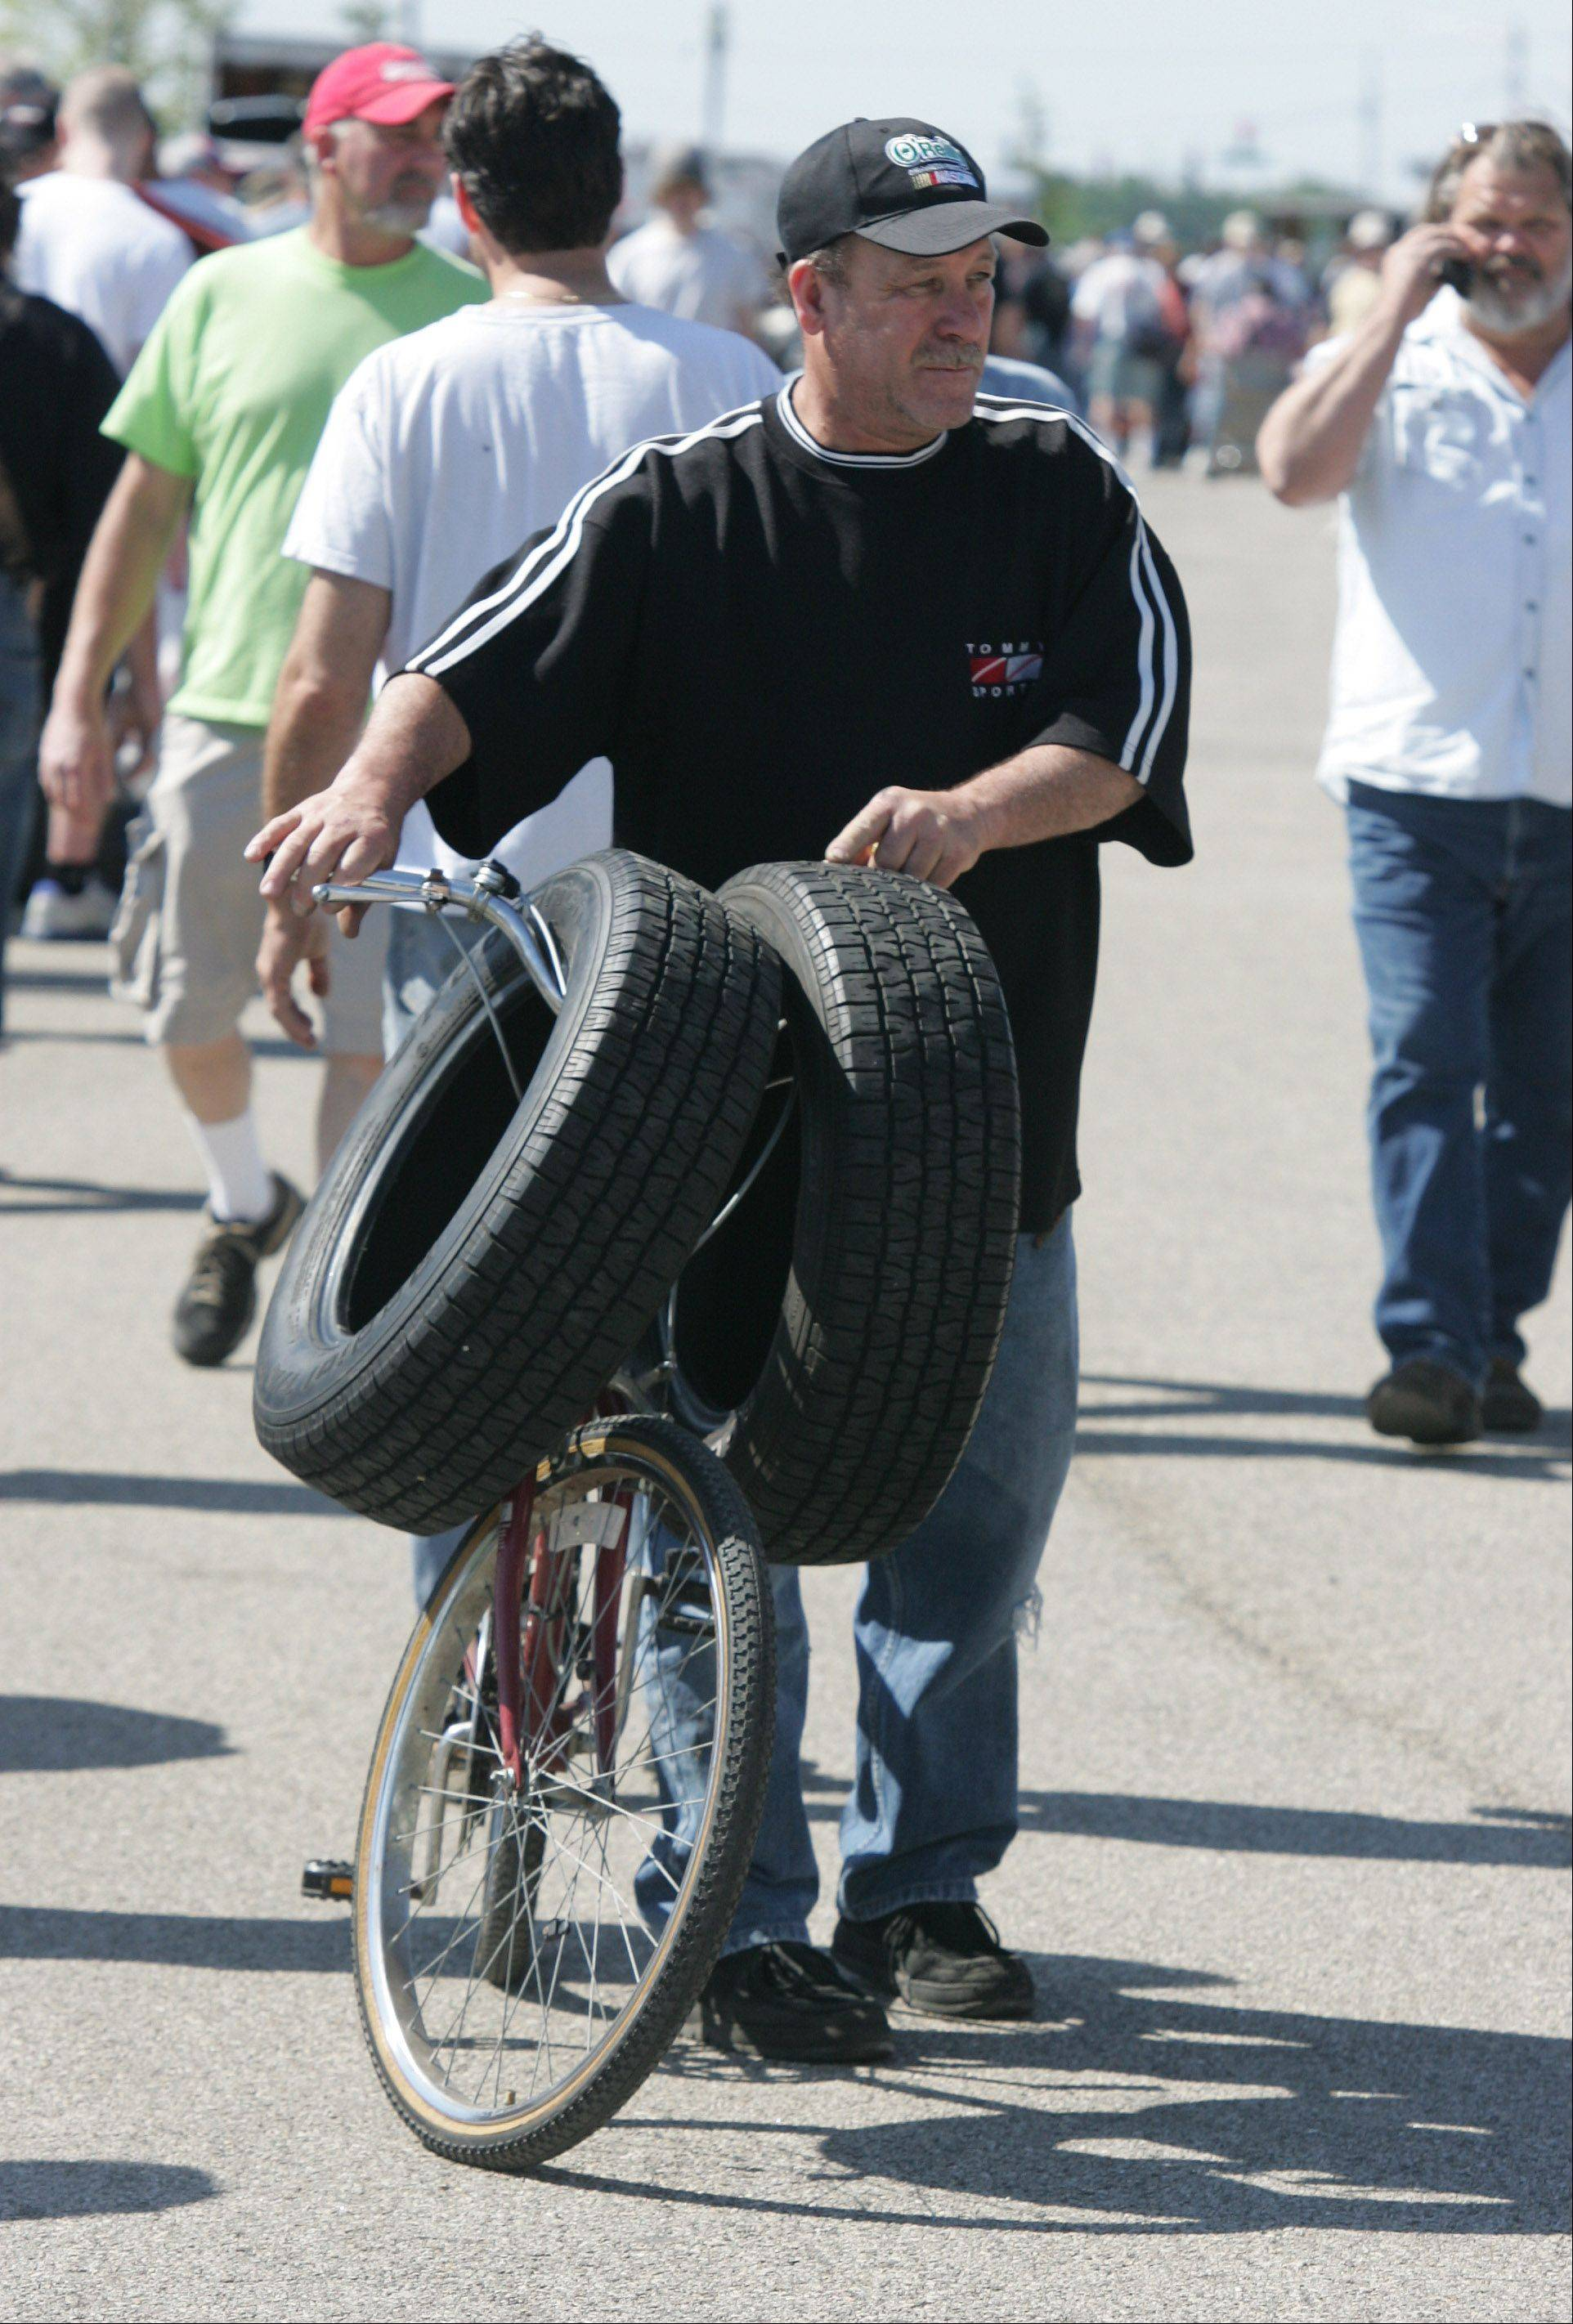 Manuel Torres, of Grayslake, walks with a bike and tires that he bought during Skip's Fiesta Drive-In Truck & Auto Swap Meet & Car Show Sunday at the Lake County Fairgrounds in Grayslake. The 30th anniversary celebration featured a parts swap meet and a display of antique and collectible automobiles.